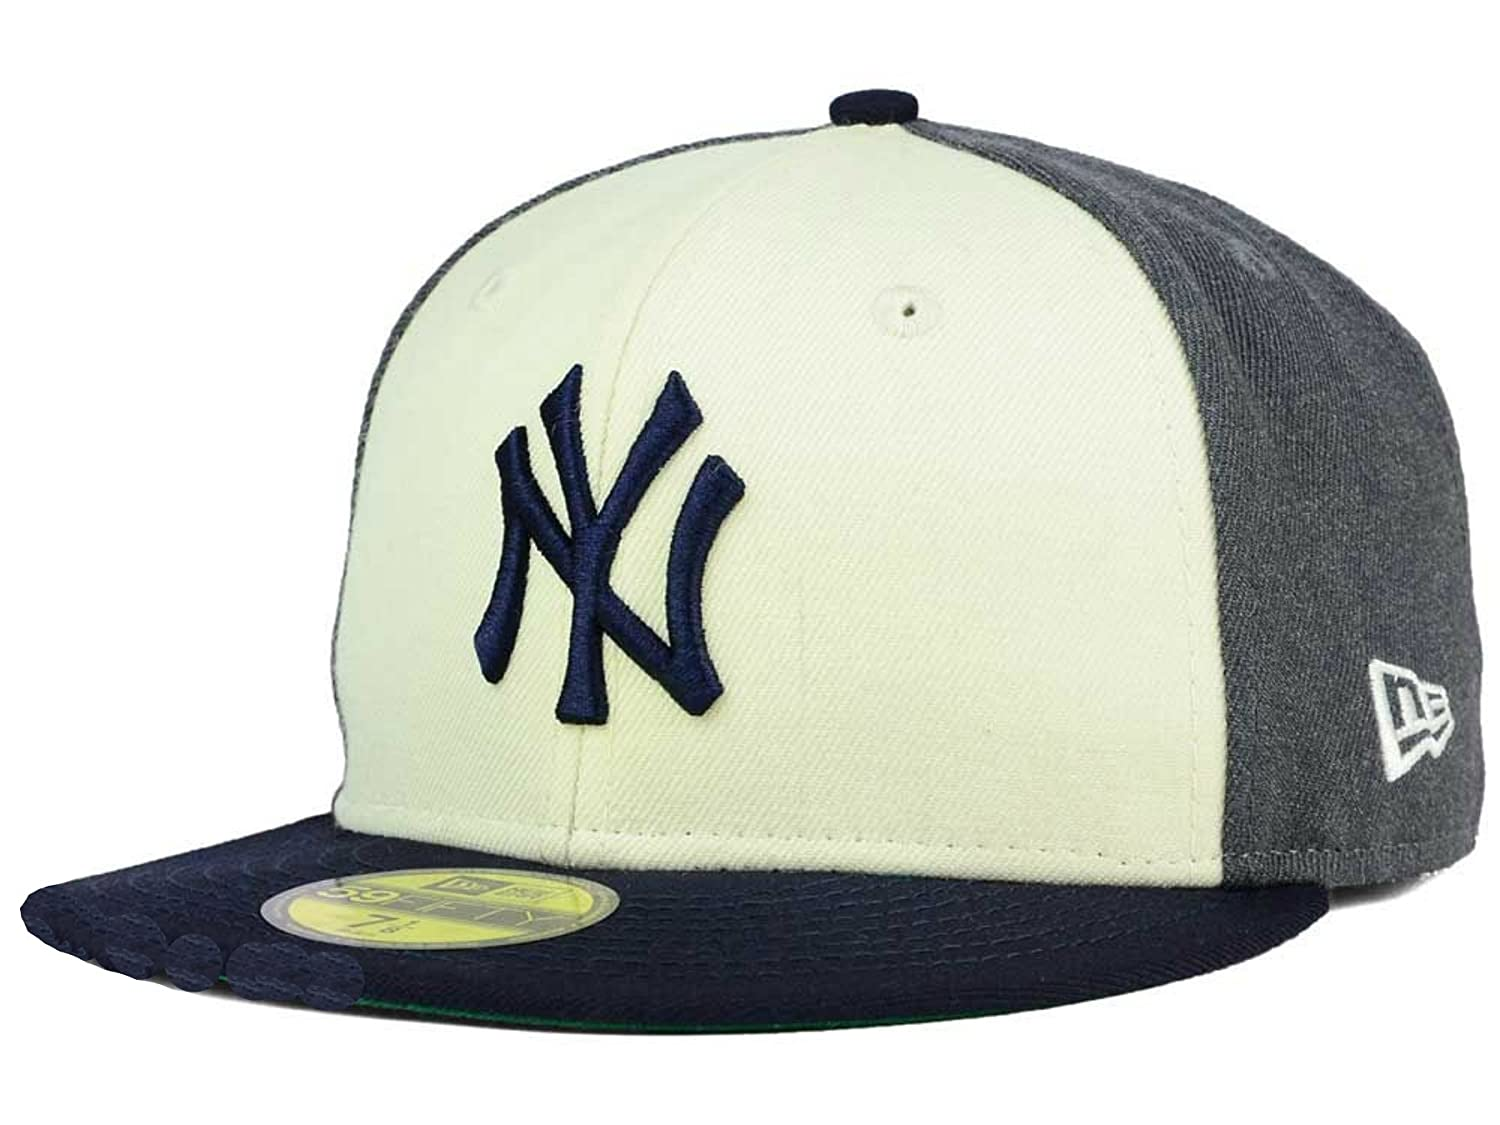 5ff50e9a76c Amazon.com   New York Yankees Tri Tone Fitted Size 7 1 2 Hat Cap - Charcoal  Black   Off White   Sports   Outdoors